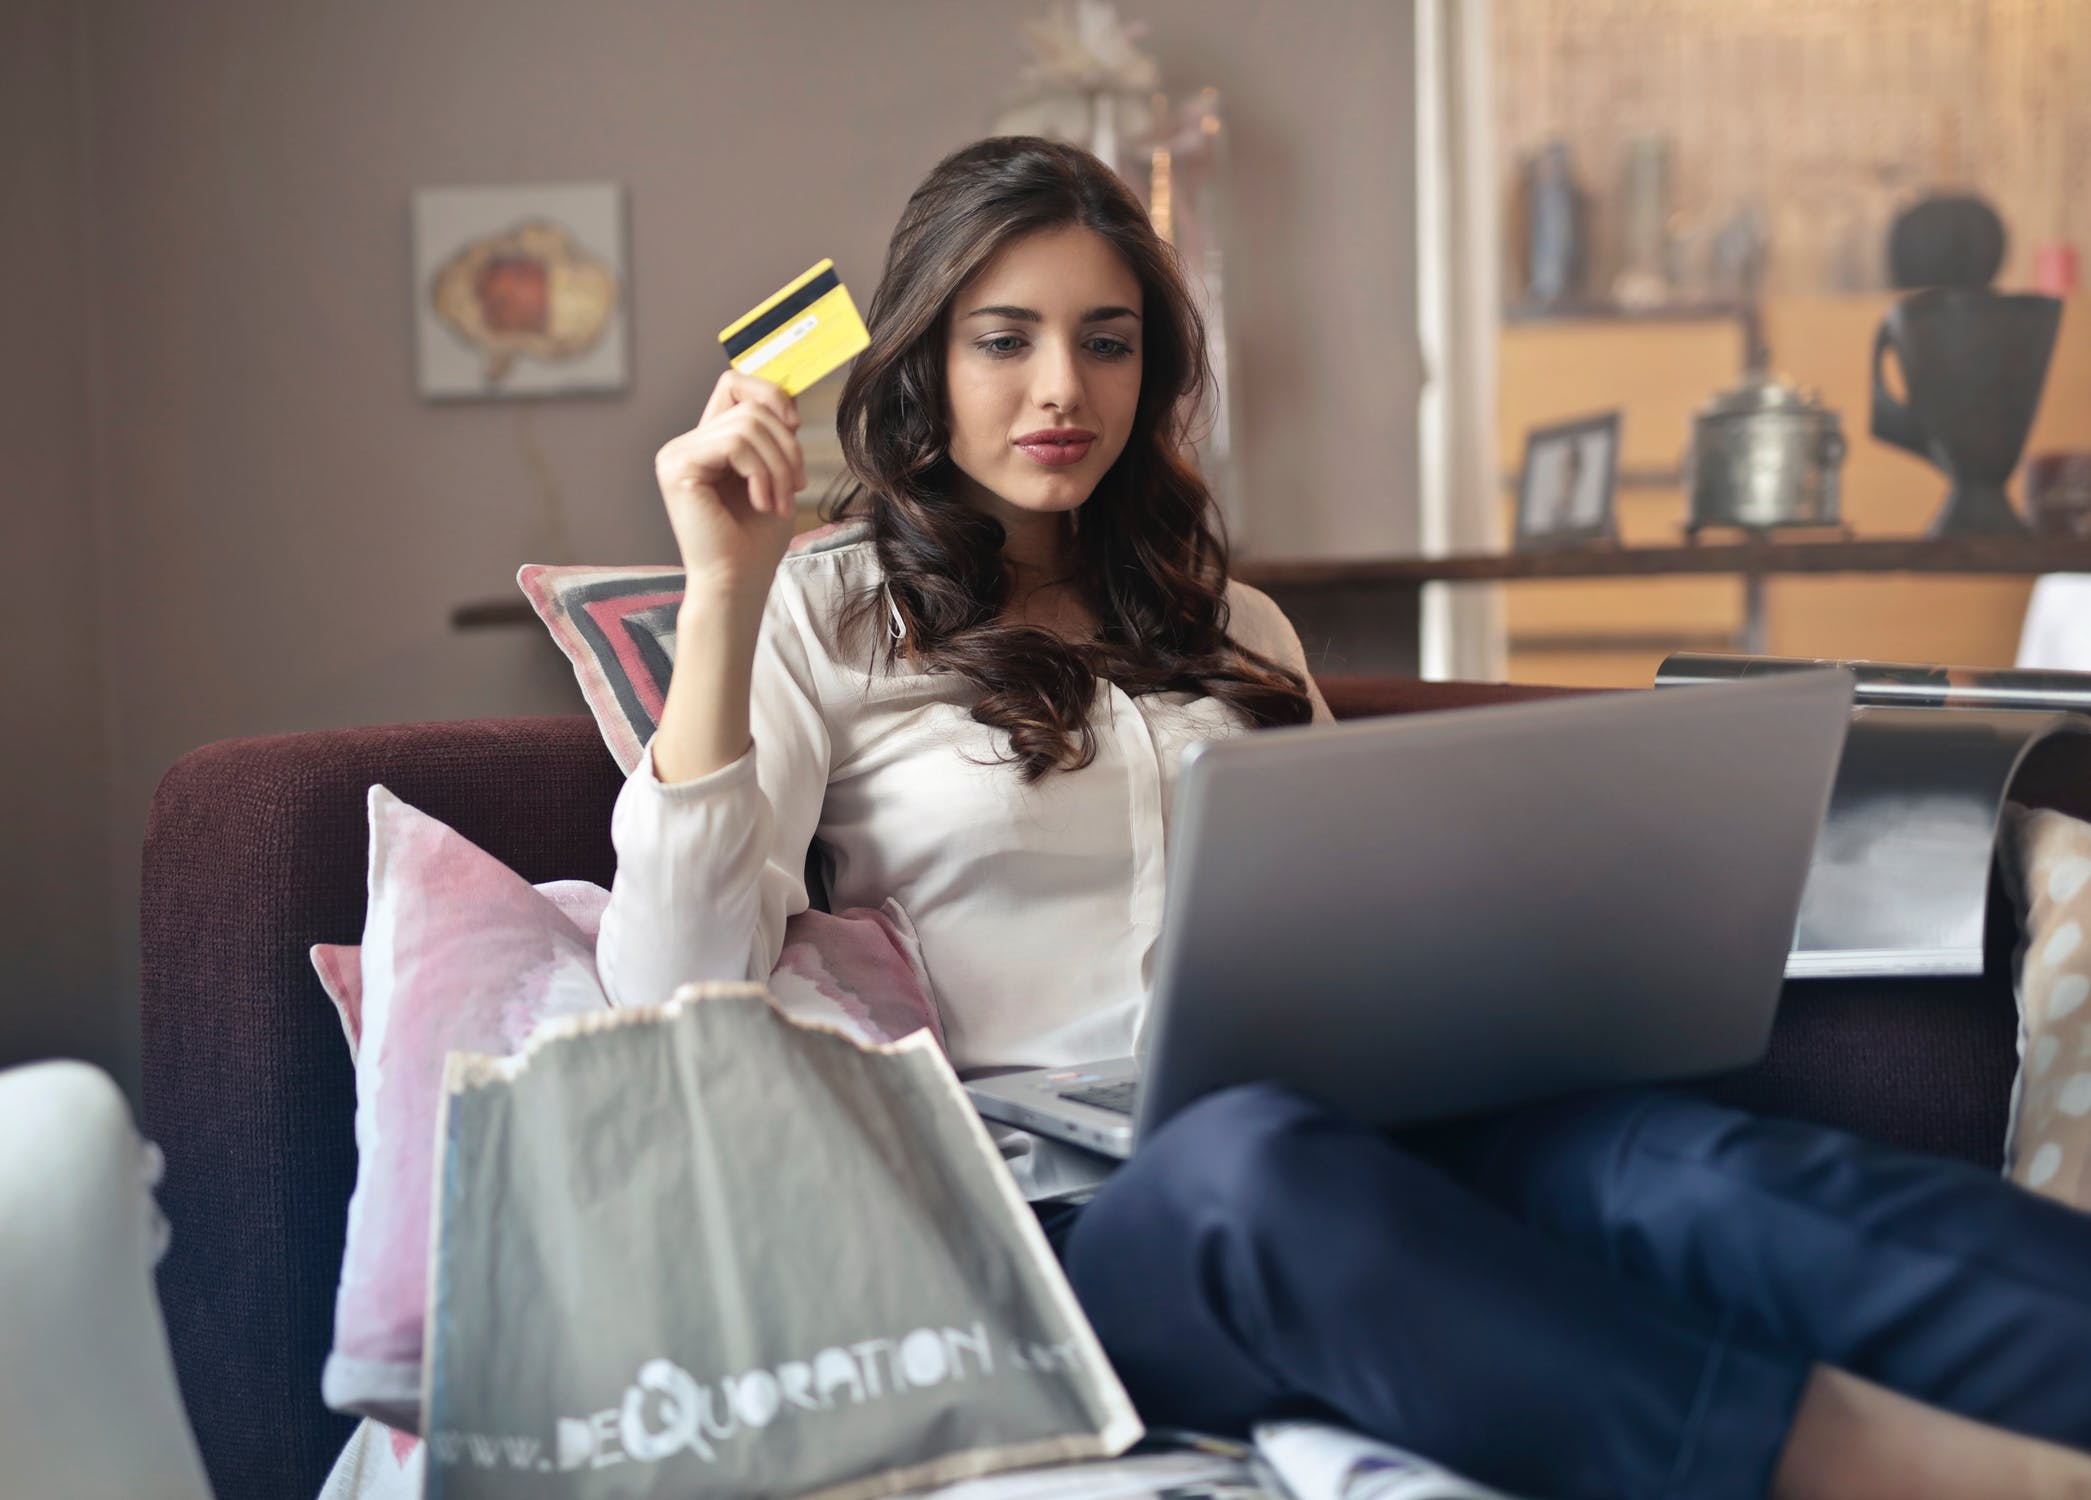 Person making online purchase